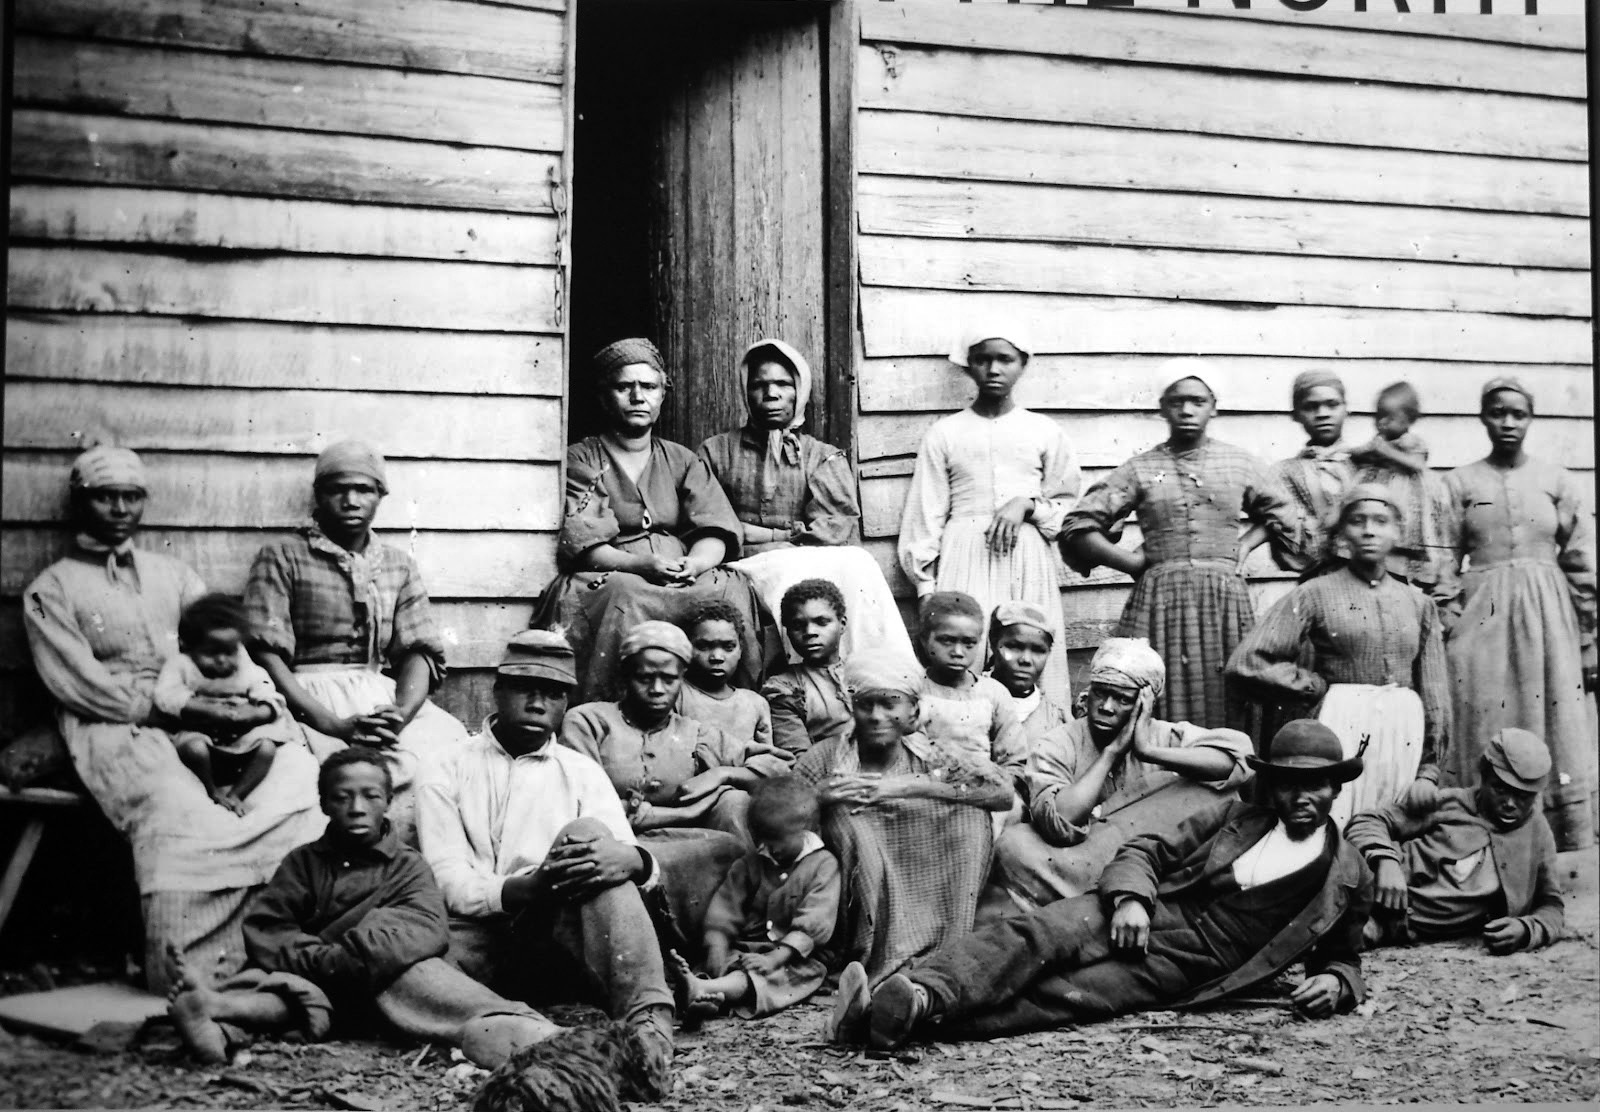 Obama Marks 150th Anniversary of End of Slavery - His Ancestors ...